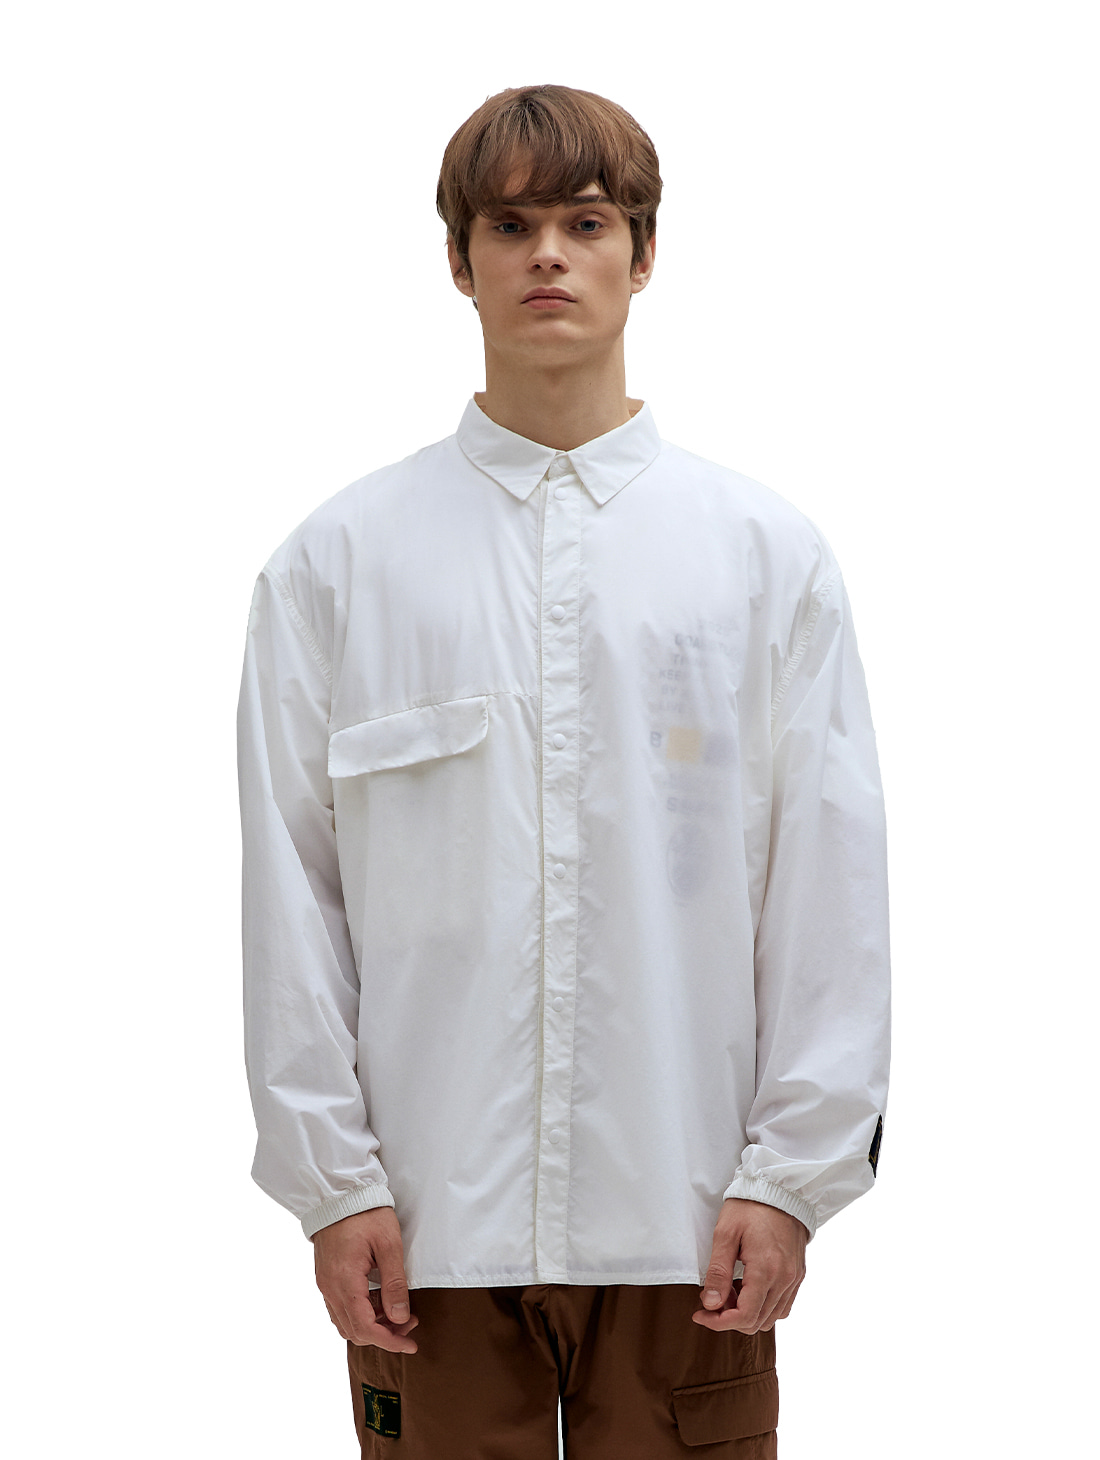 GOALSTUDIO SSFC WINDBREAKER SHIRT - WHITE